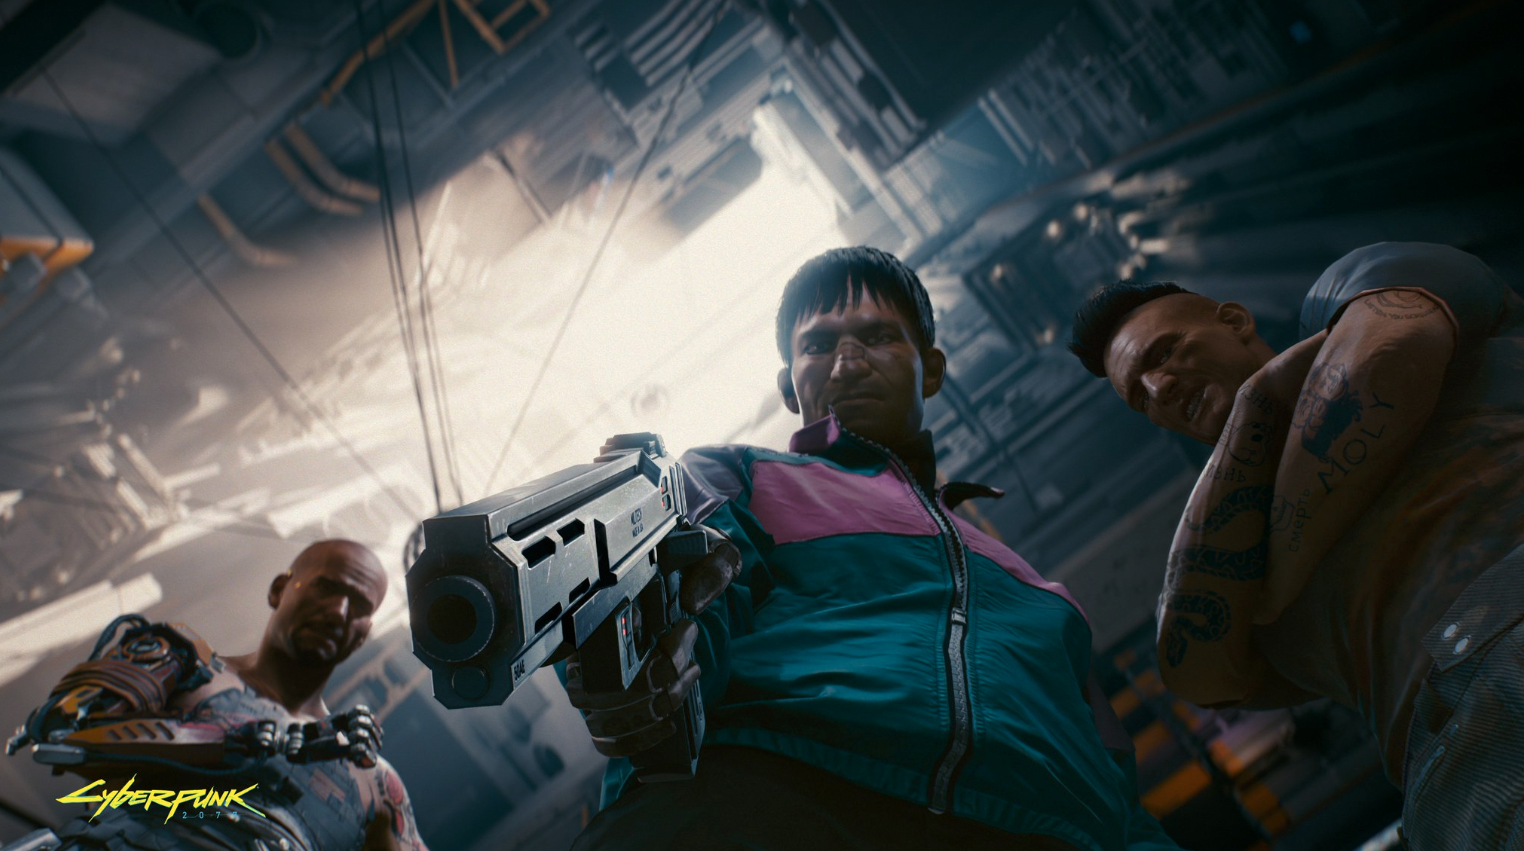 Cyberpunk 2077's DLC will remain secret until after the game's launch